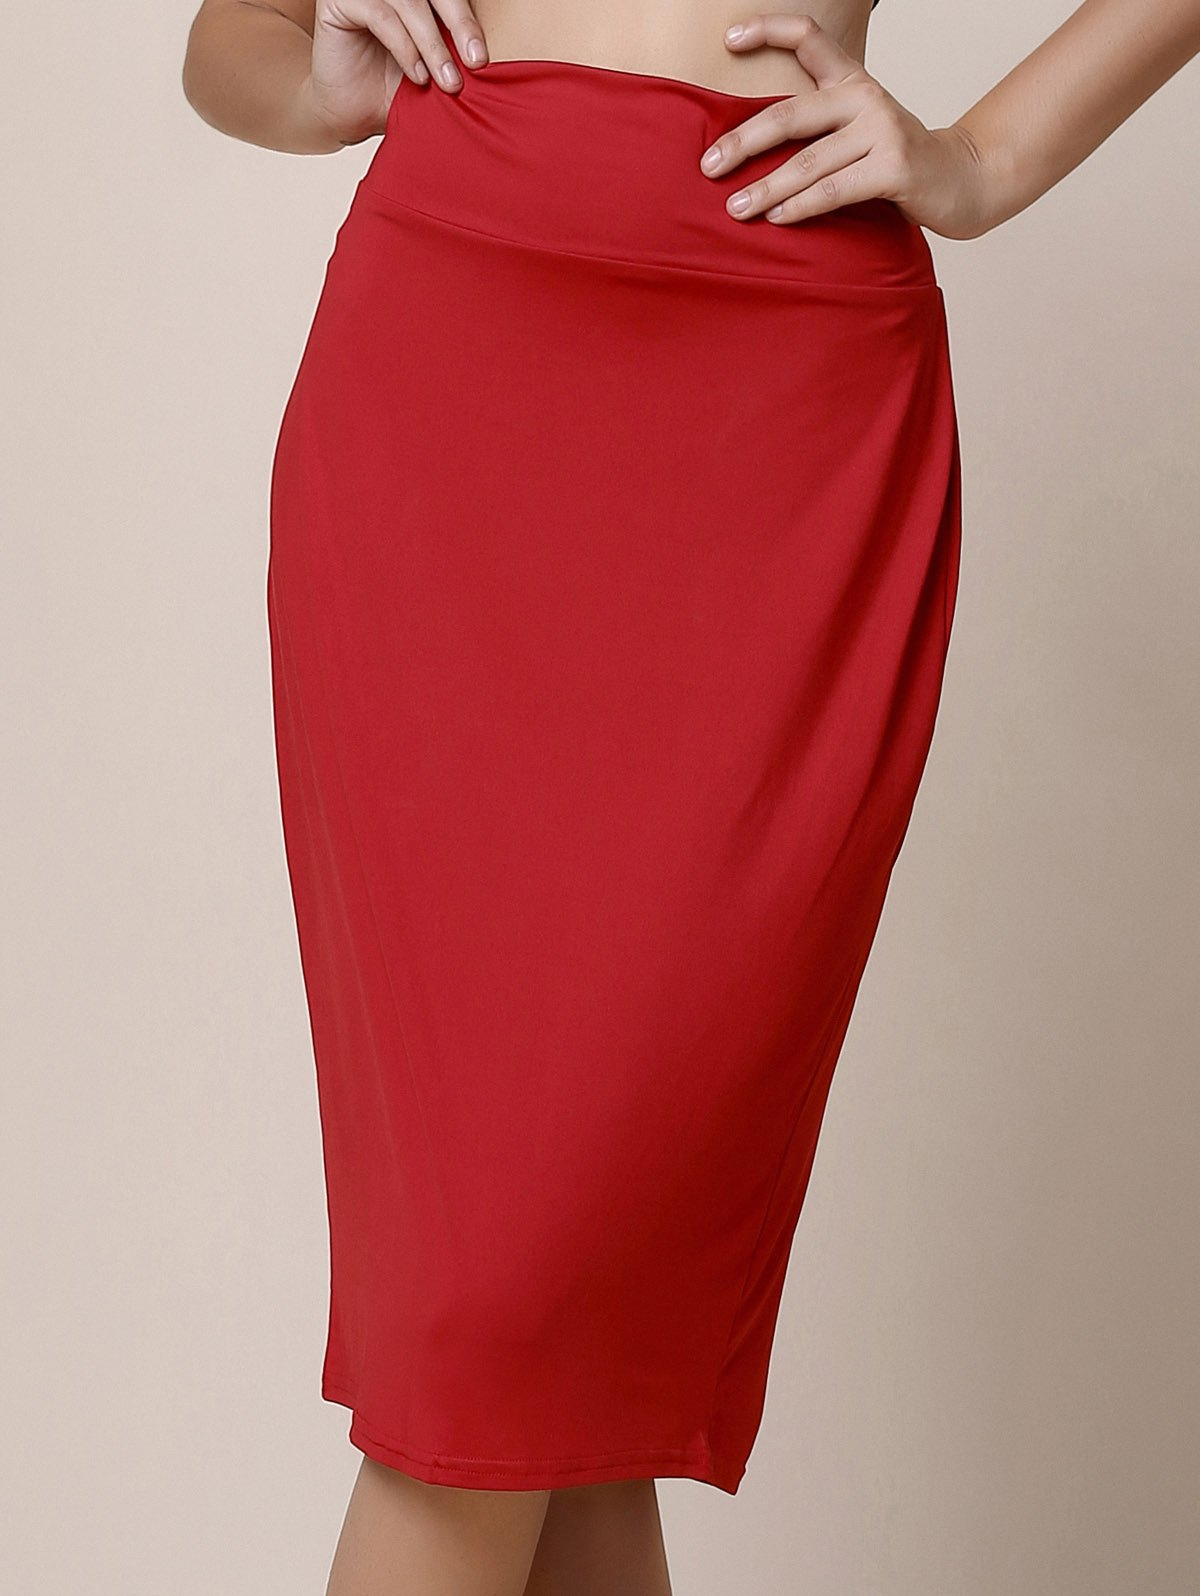 High-Waisted Work Bodycon Midi Skirt - RED L